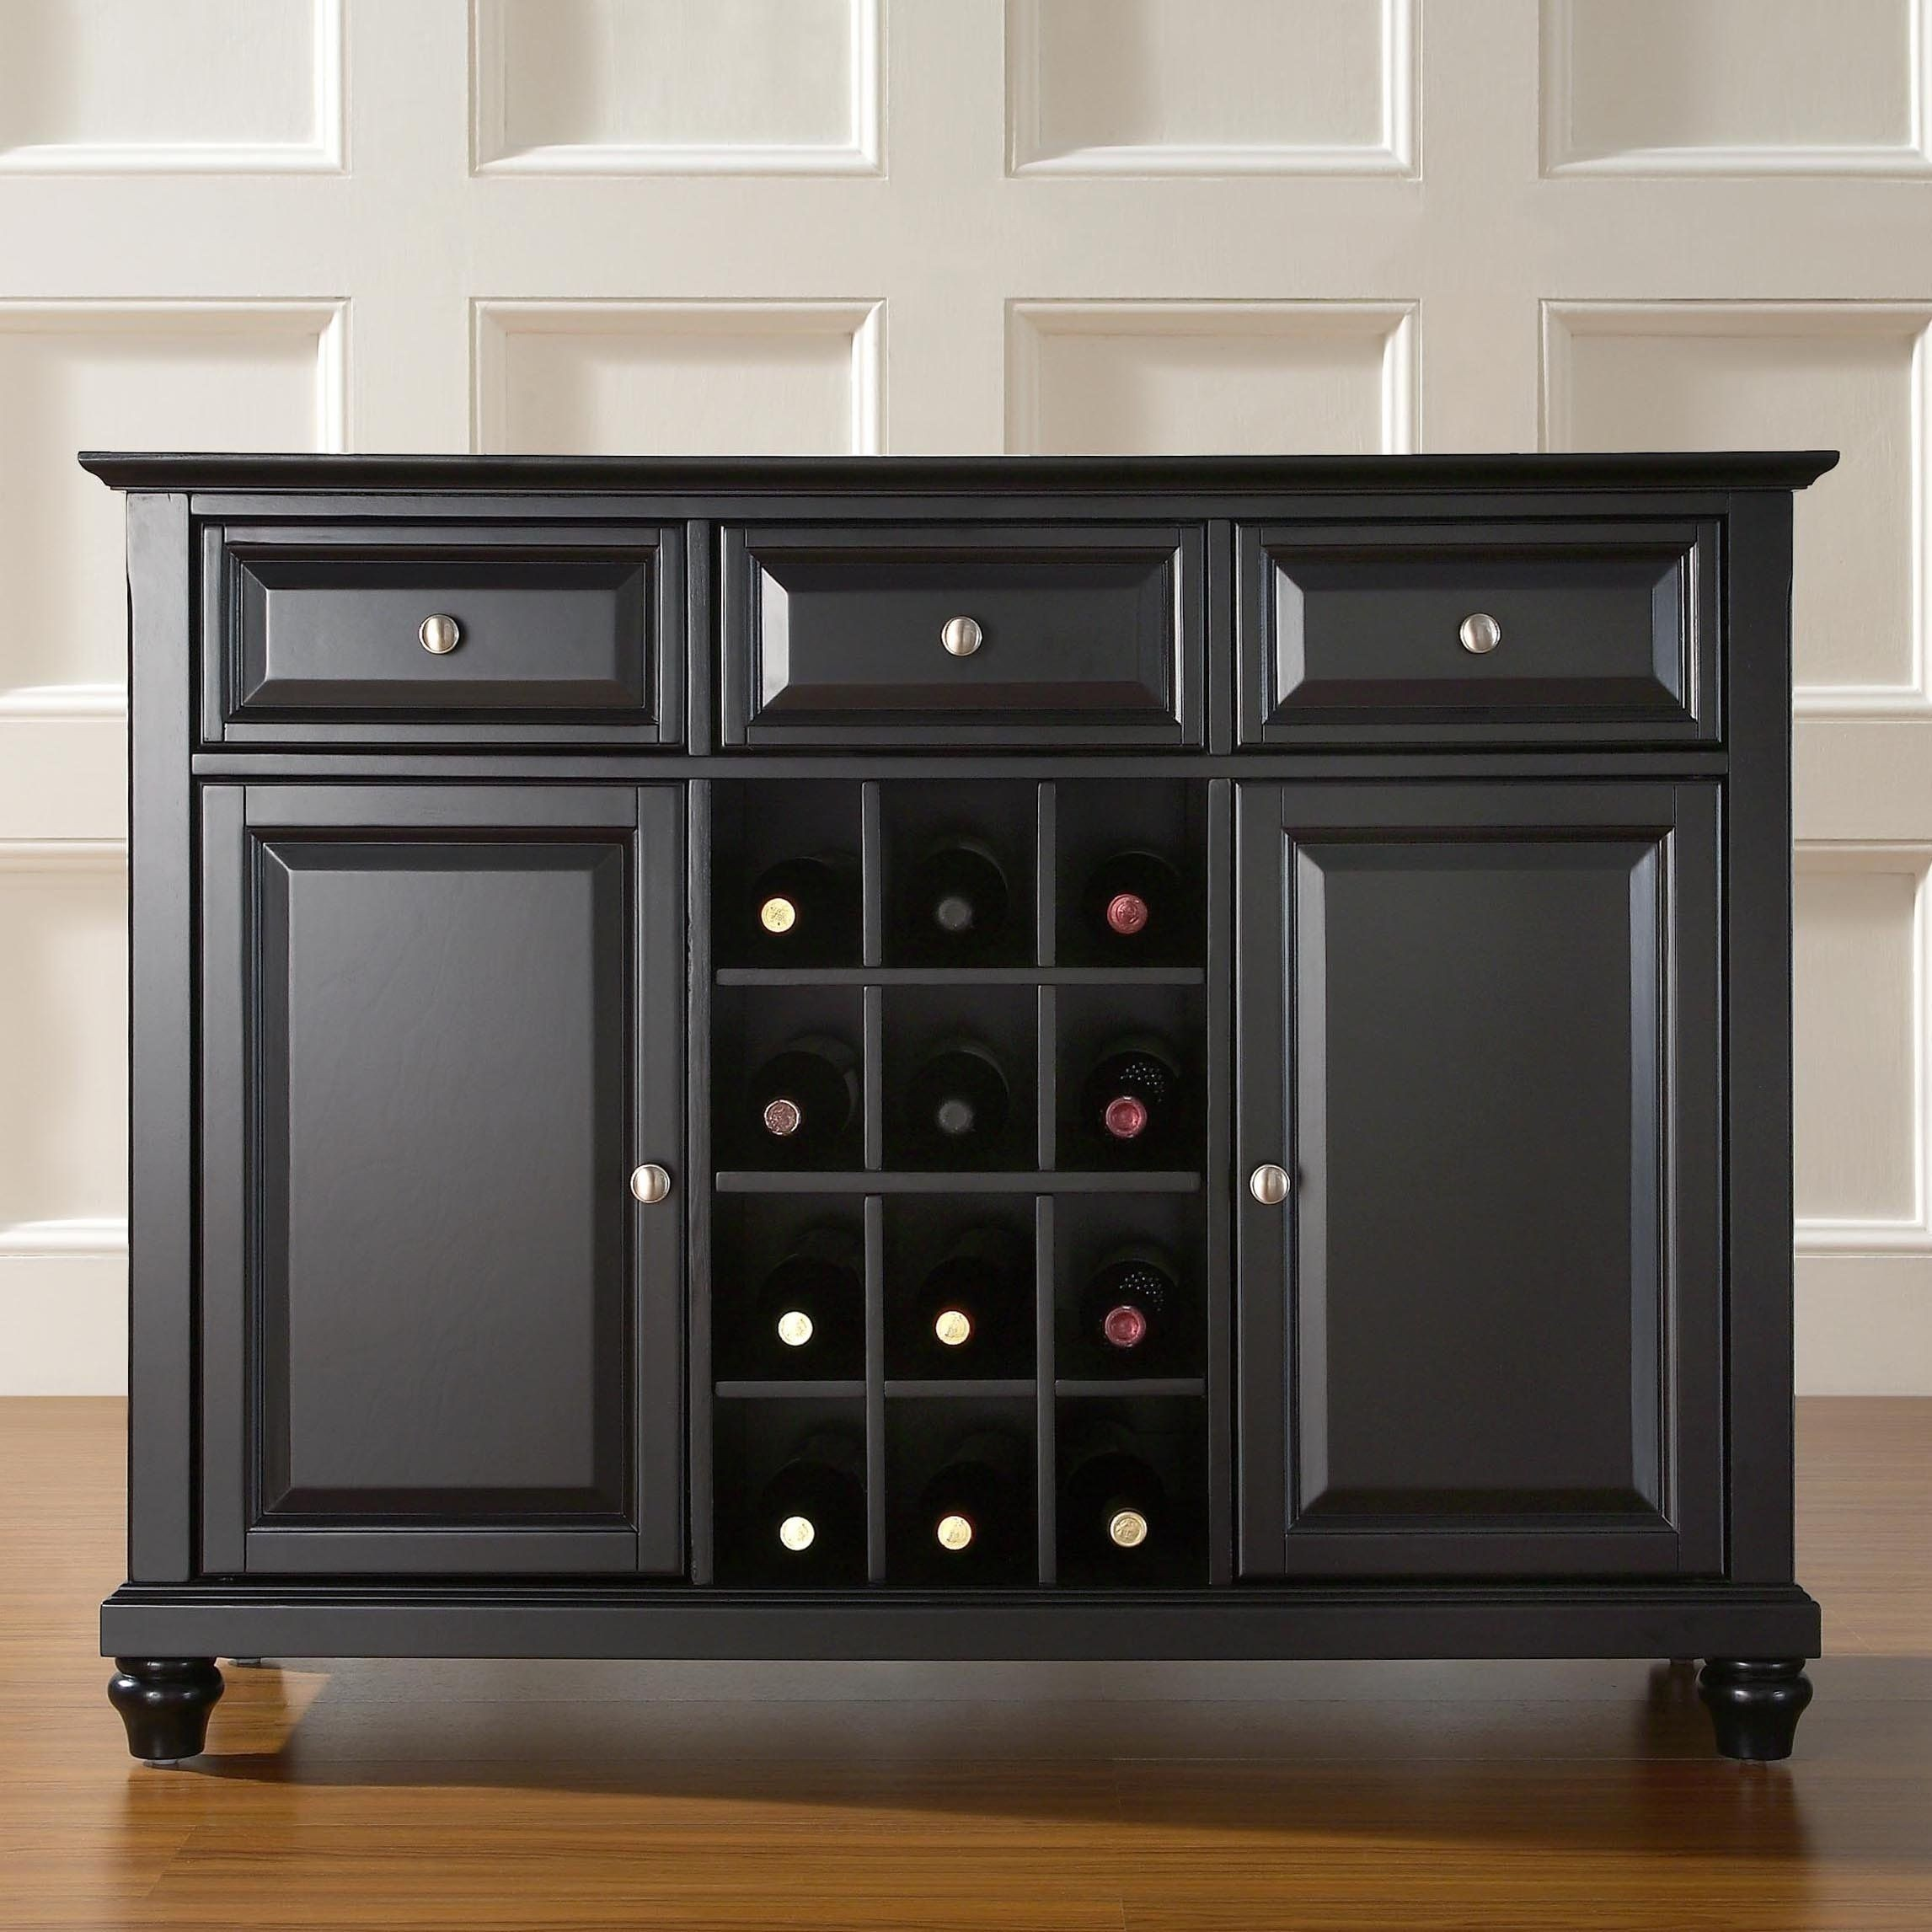 Becker Sideboard / Buffet